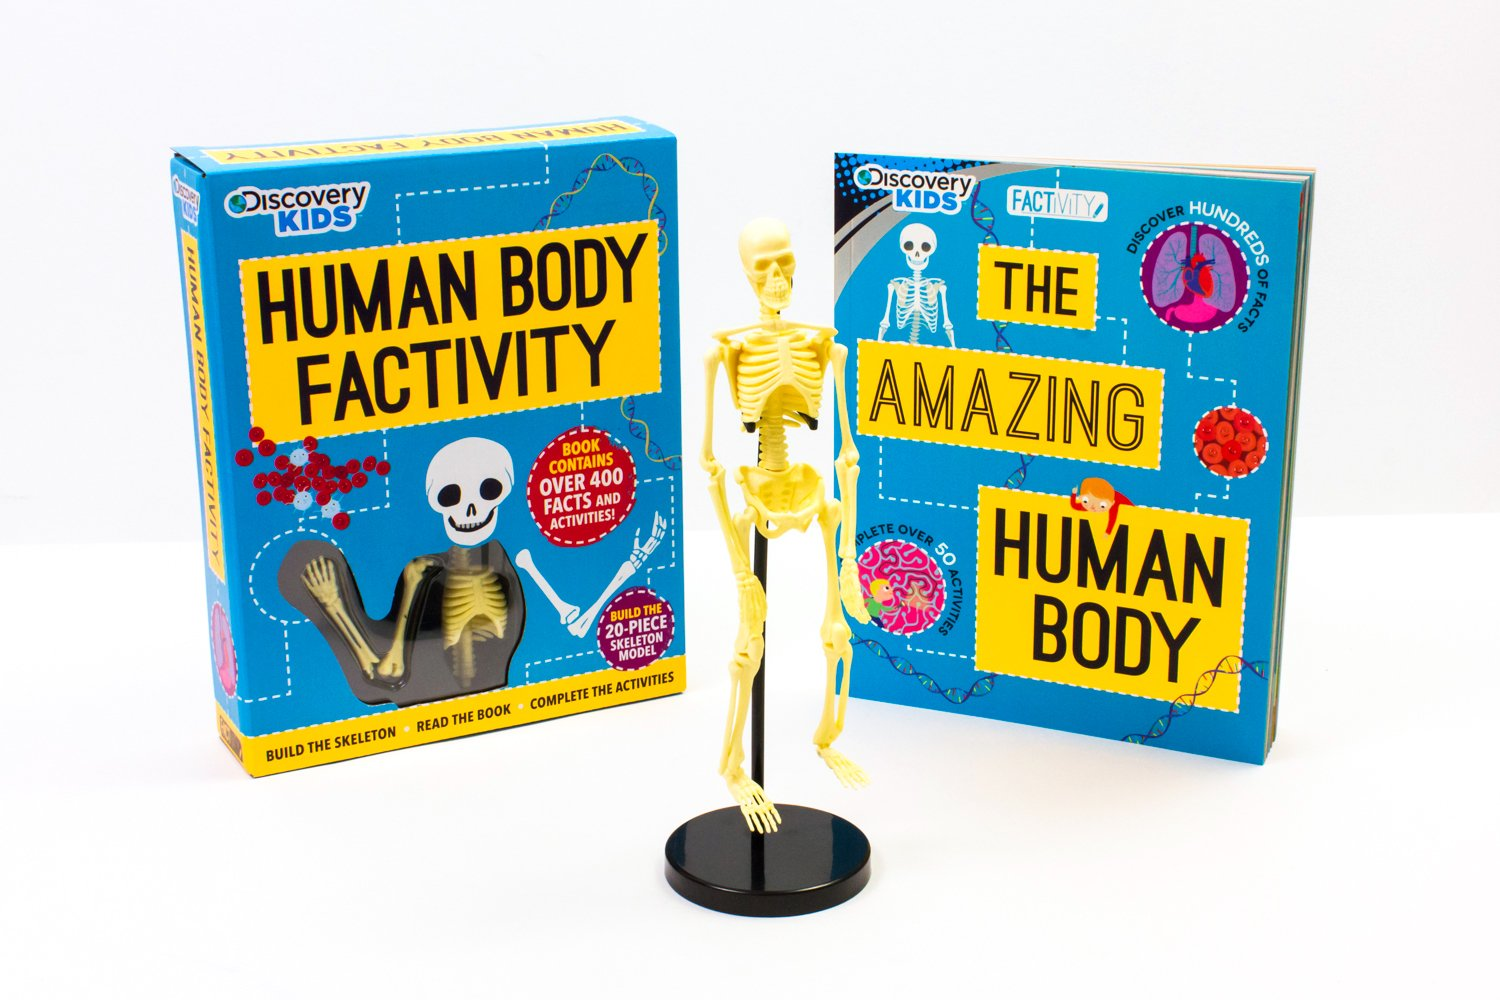 Discovery Human Body Factivity: Build the Skeleton, Read the Book, Complete  the Activities Discovery Kids: Traveller Location.uk: Anna Claybourne, Mar Ferrero,